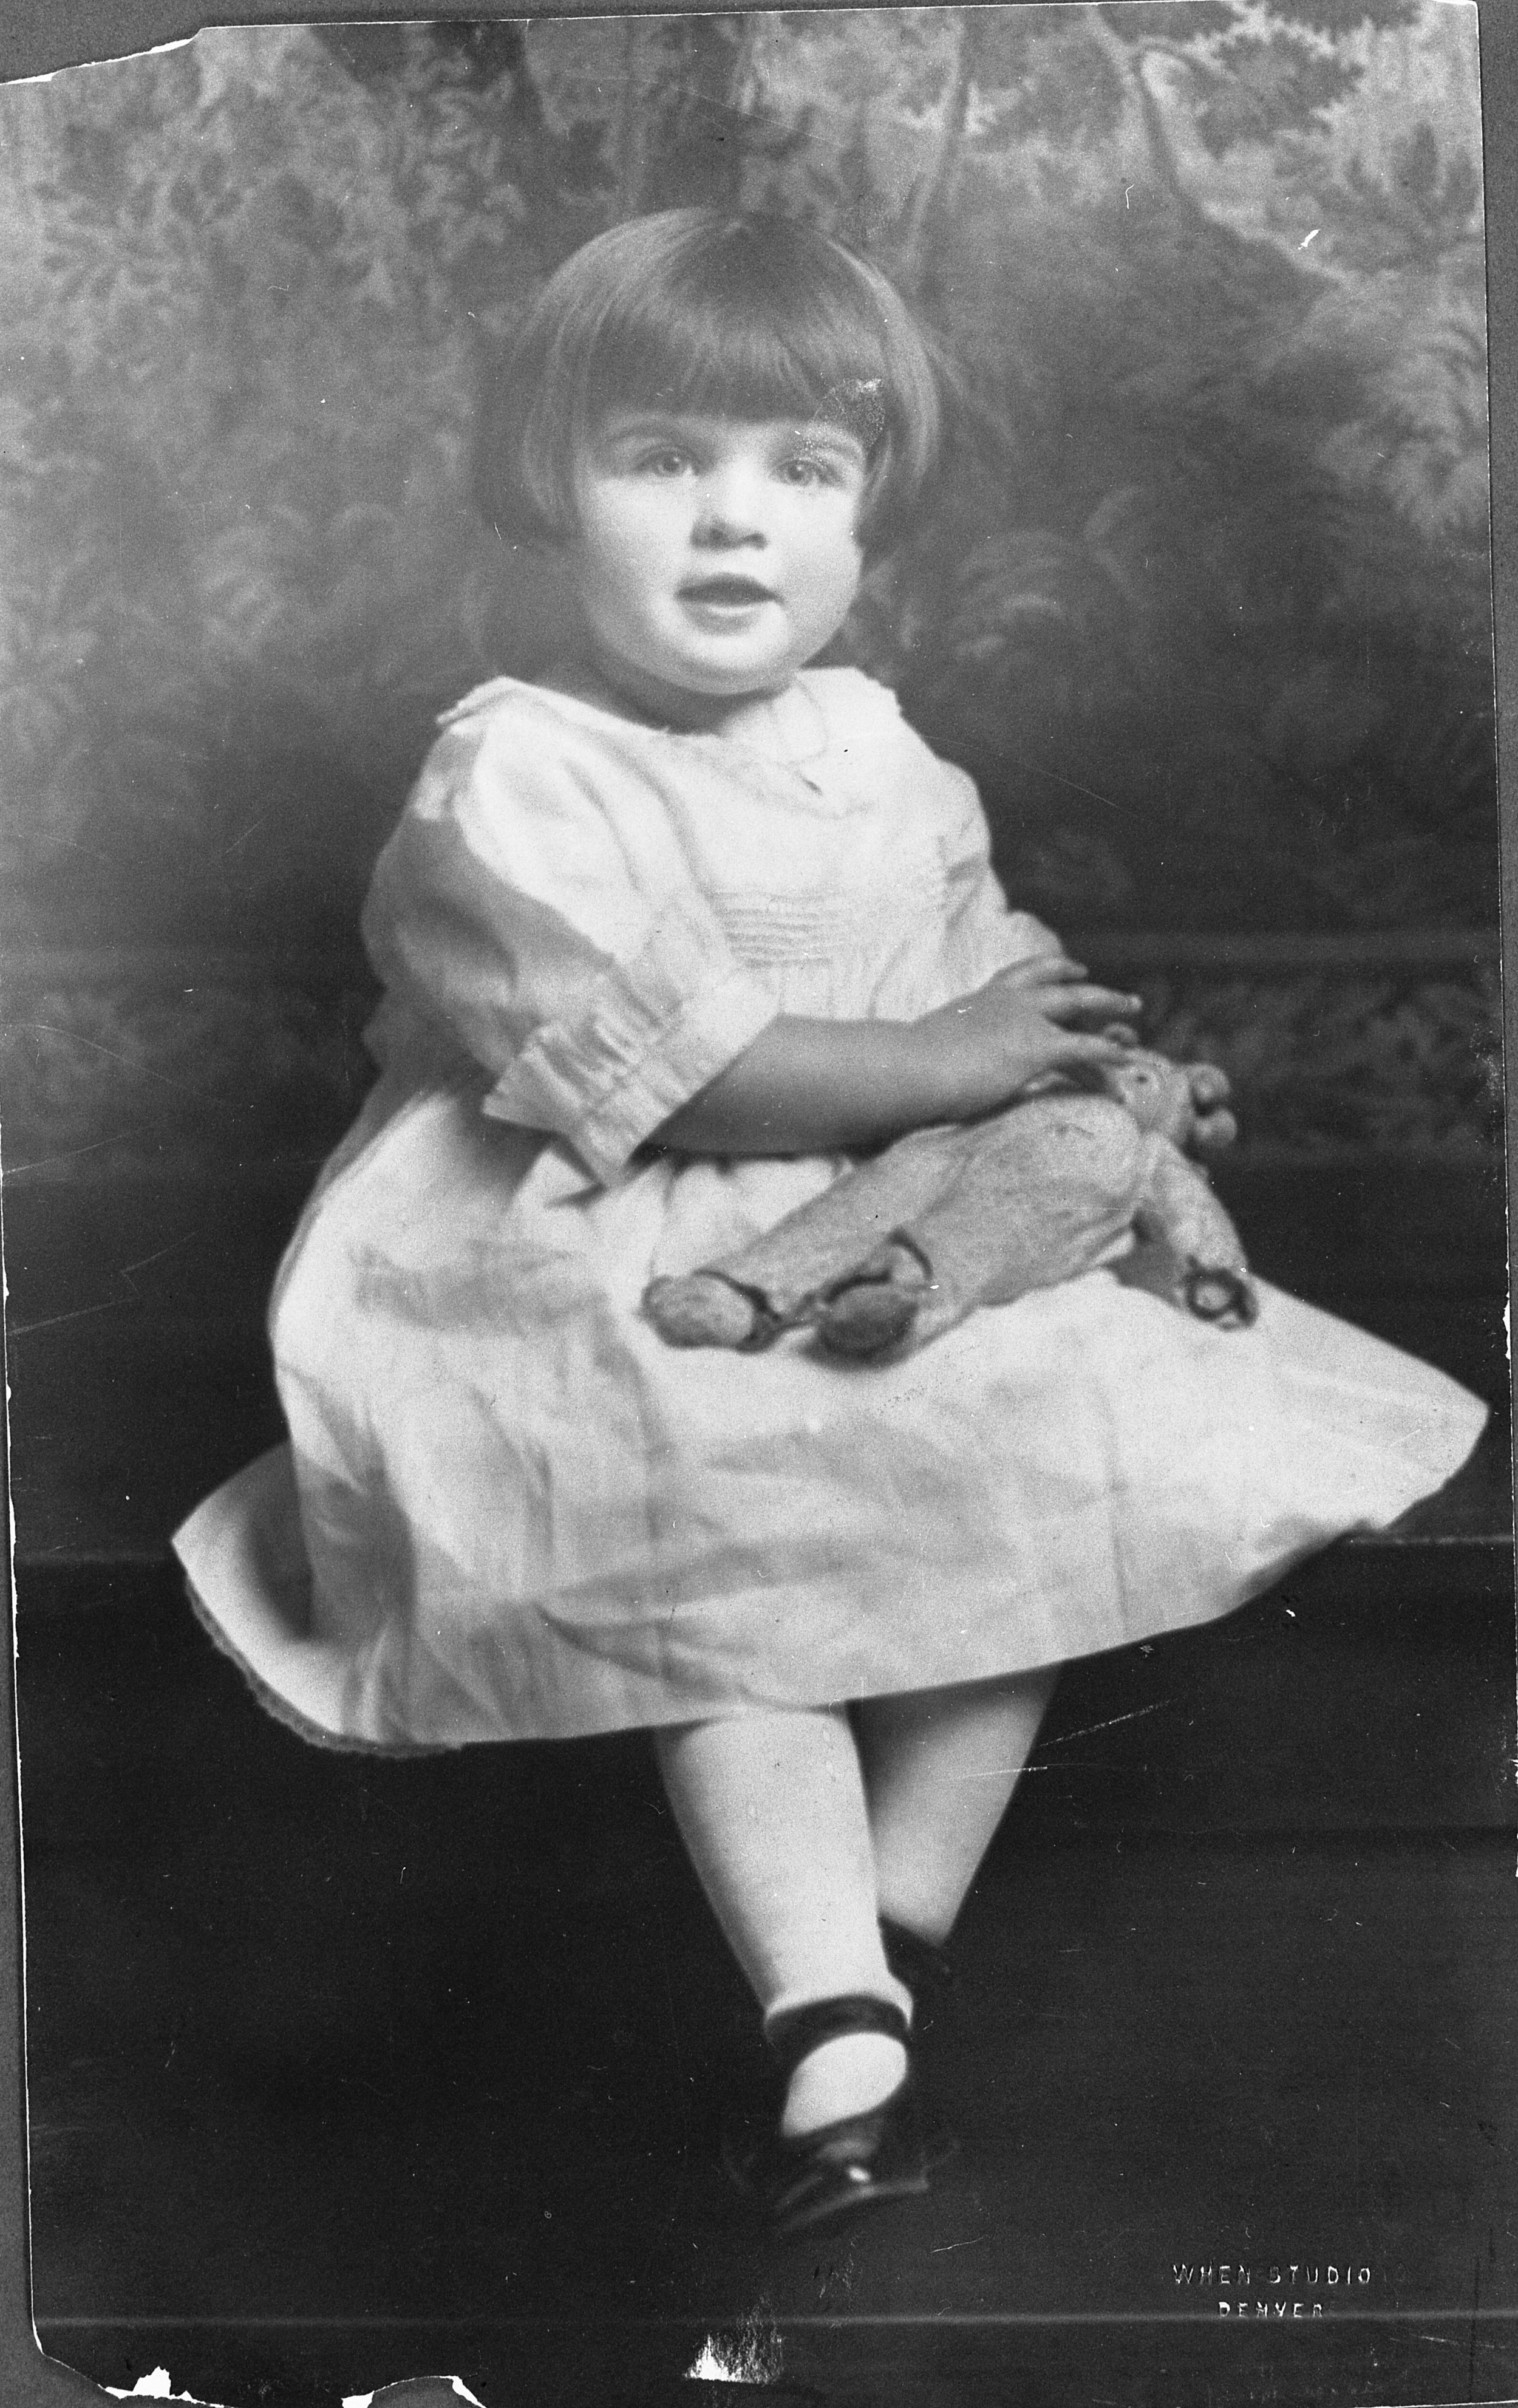 First Lady Betty Ford, age 3 — a little girl who grew up to change the world